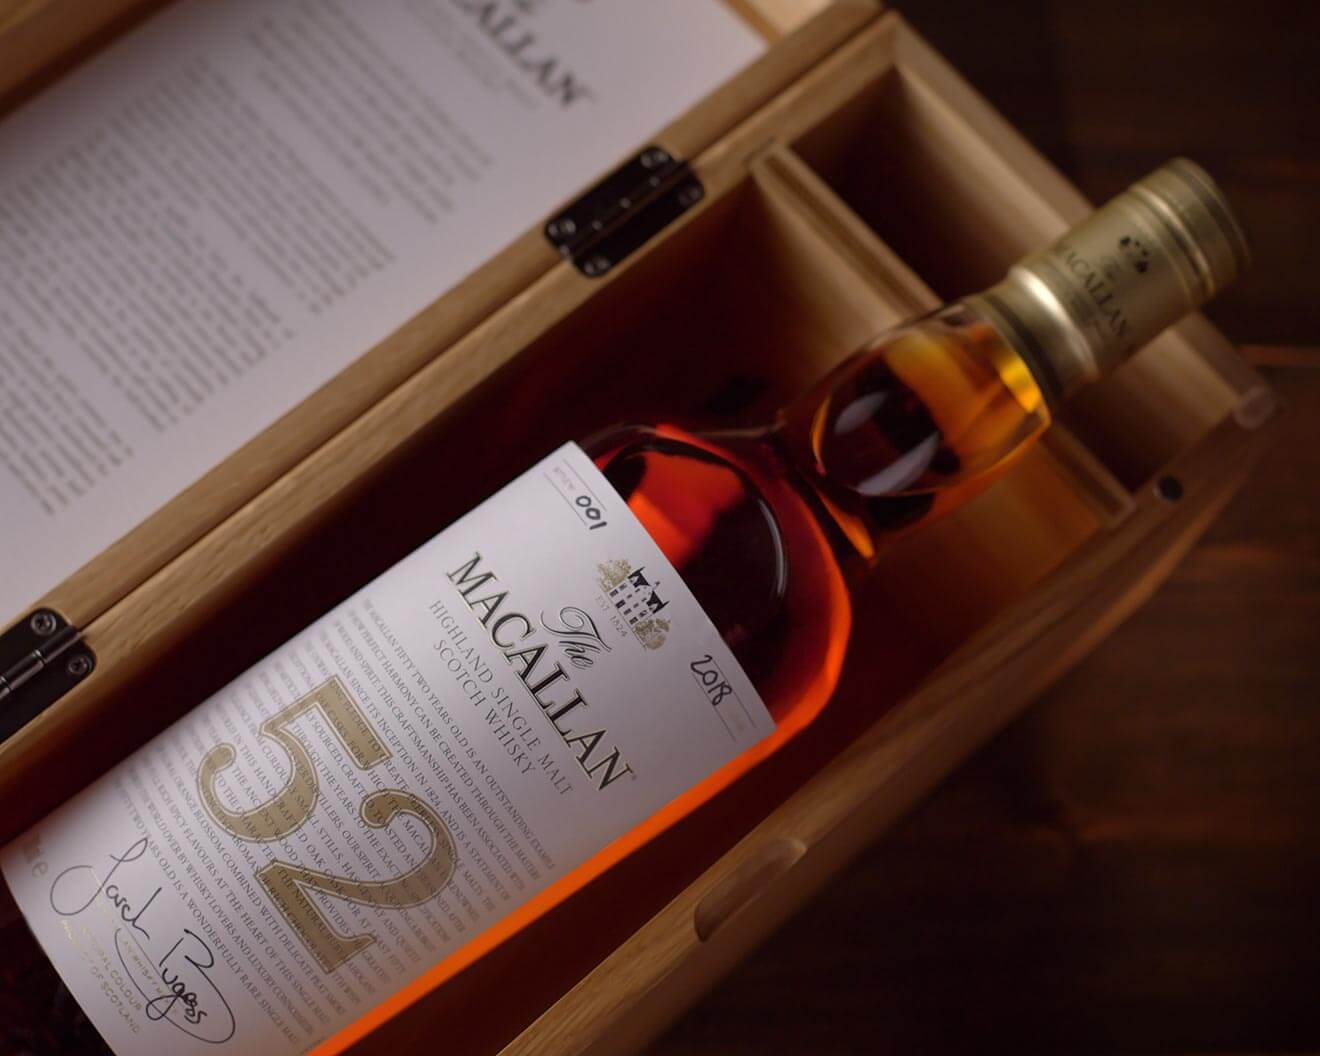 The Macallan 52 years old 2018, bottle and package